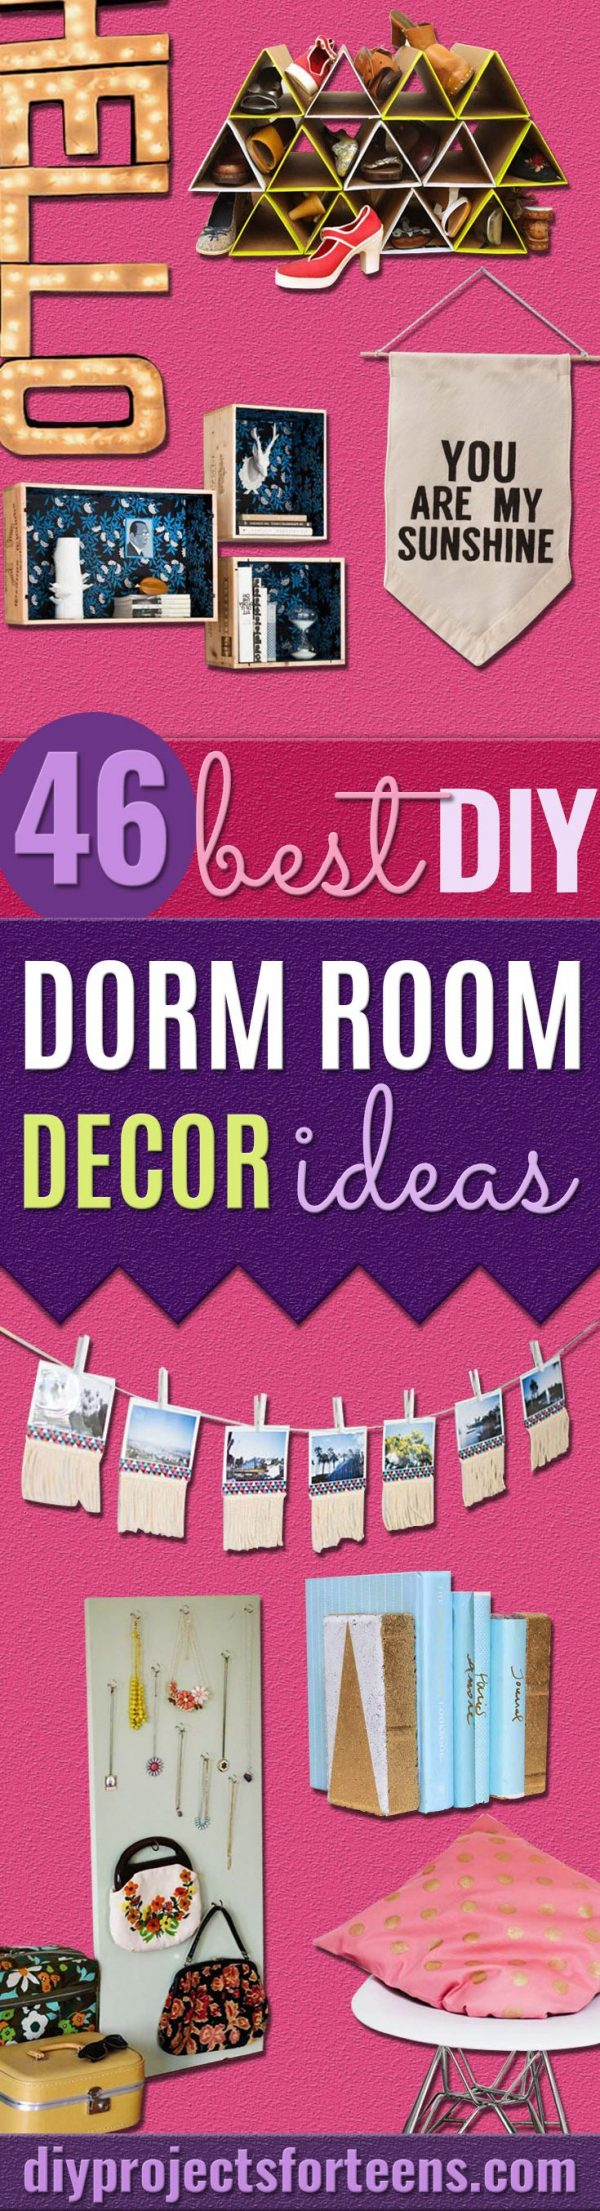 DIY Dorm Room Decor Ideas -Cheap DIY Dorm Decor Projects for College Rooms - Cool Crafts, Wall Art, Easy Organization for Girls - Fun DYI Tutorials for Teens and College Students #diyideas #roomdecor #diy #collegelife #teencrafts